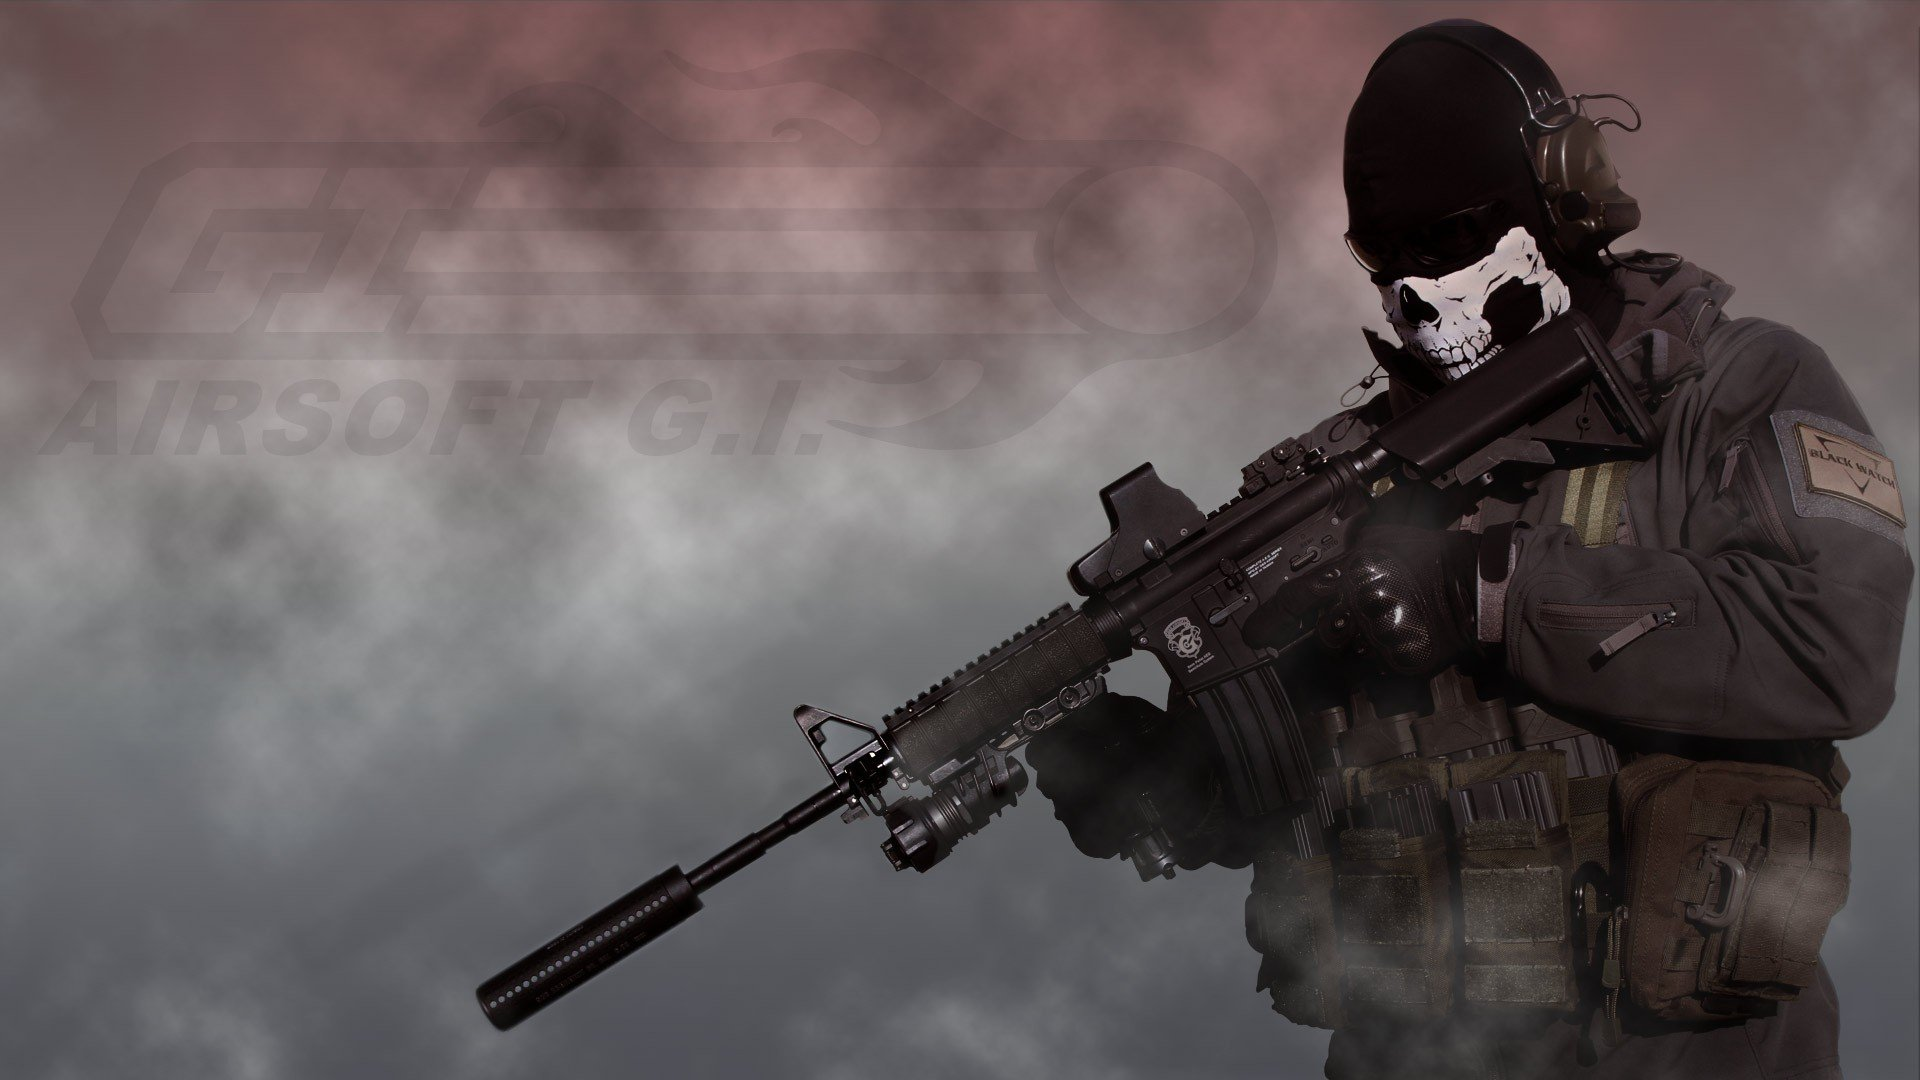 Full HD Quality Airsoft Images for 1920x1080